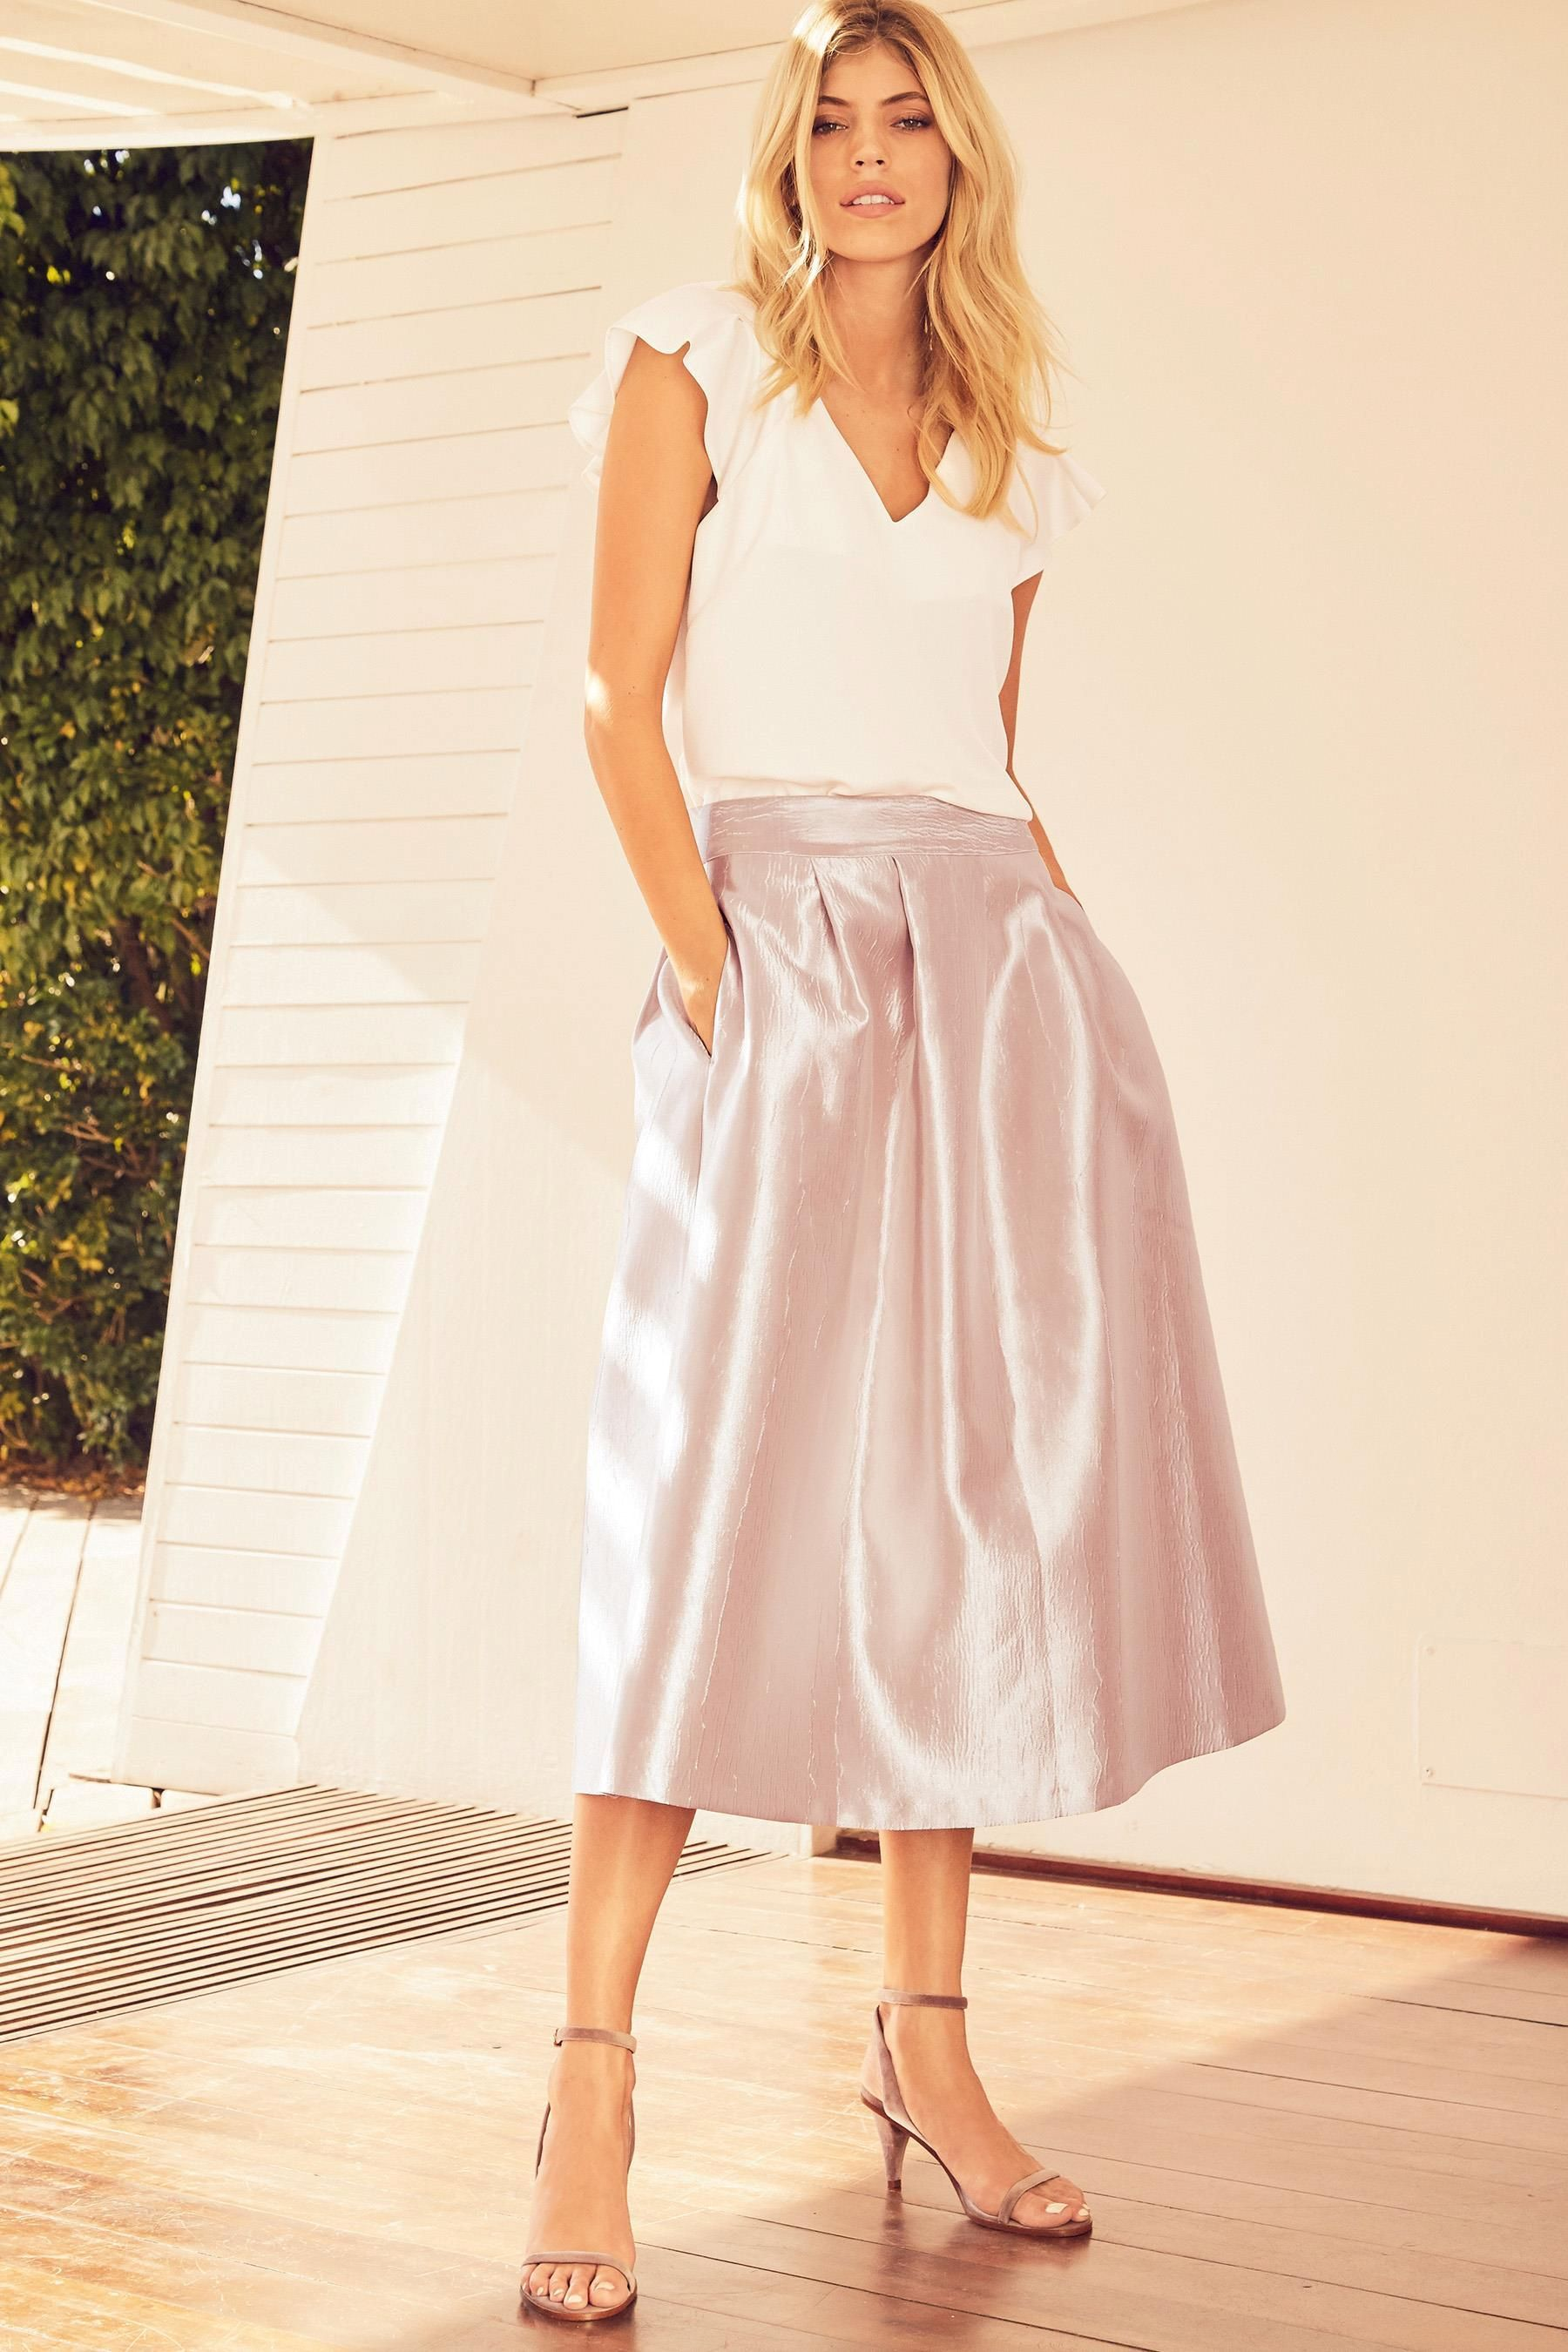 Skirt And Top For Wedding Guest Uk In 2020 Beach Wedding Guest Dress Wedding Guest Skirt Winter Wedding Guest Dress